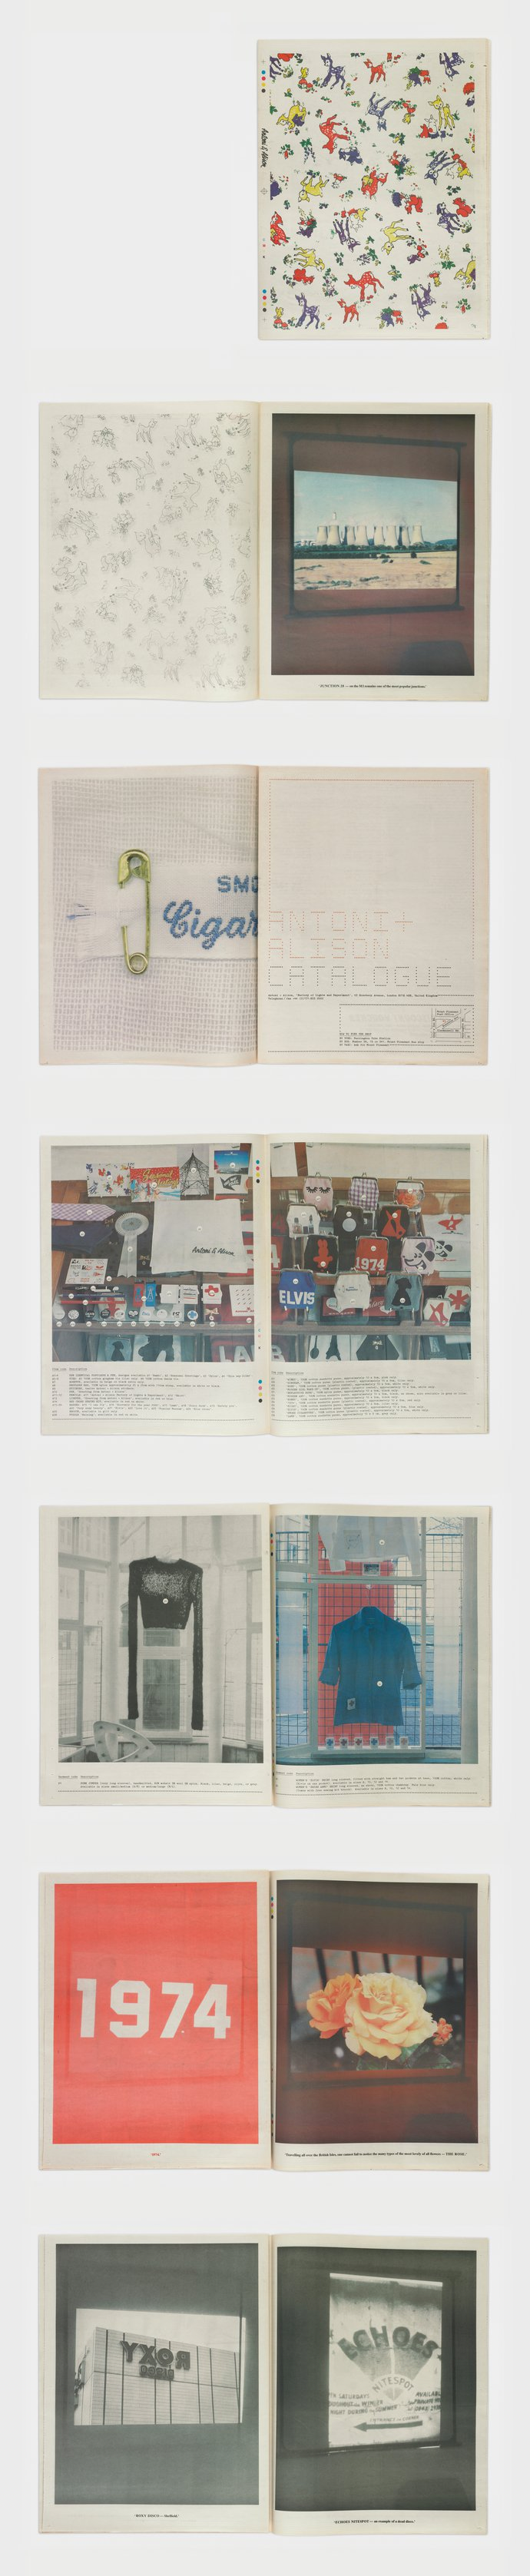 Antoni and Alison – Mail order catalogue, 1999 (Retail), image 2